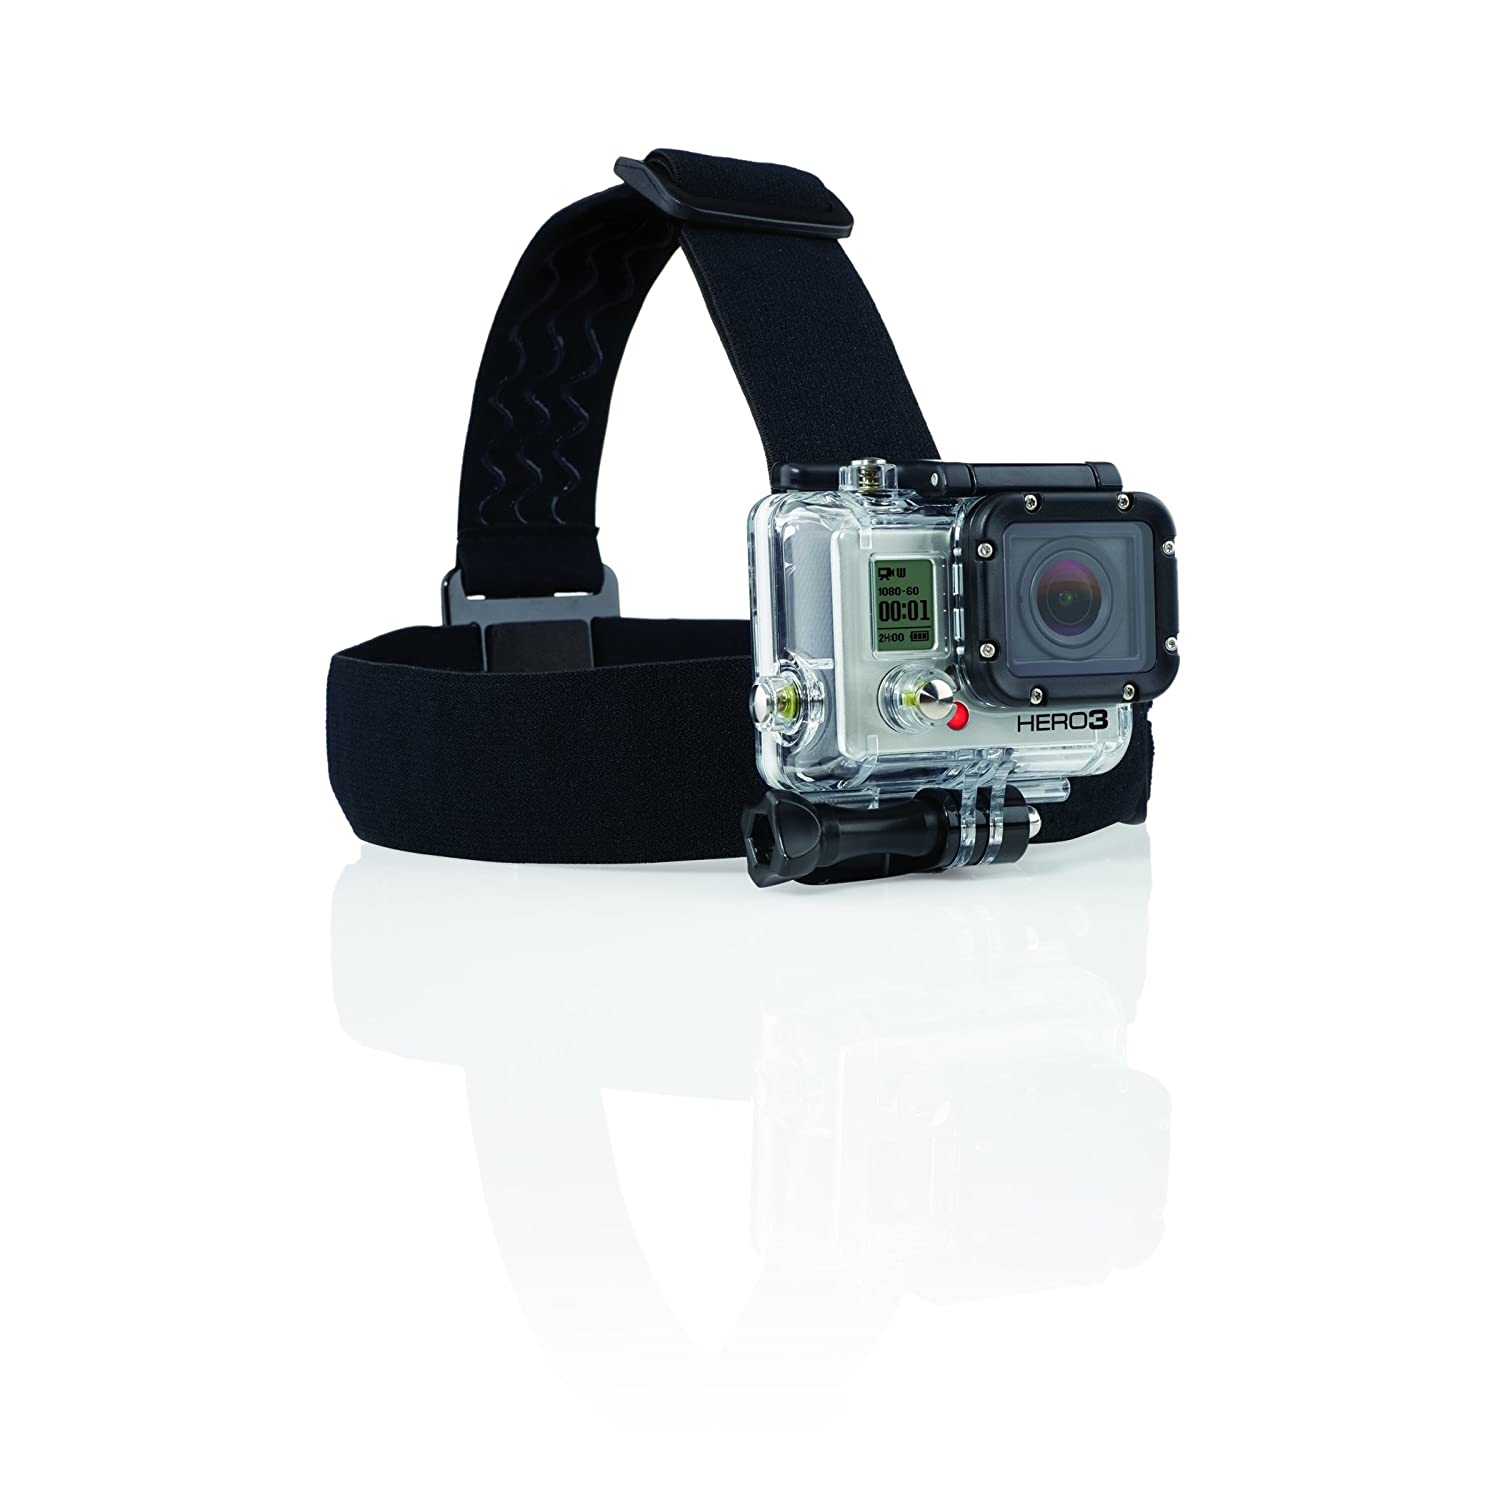 Amazon.com : GoPro Head Strap Mount : Camera Cases : Camera & Photo